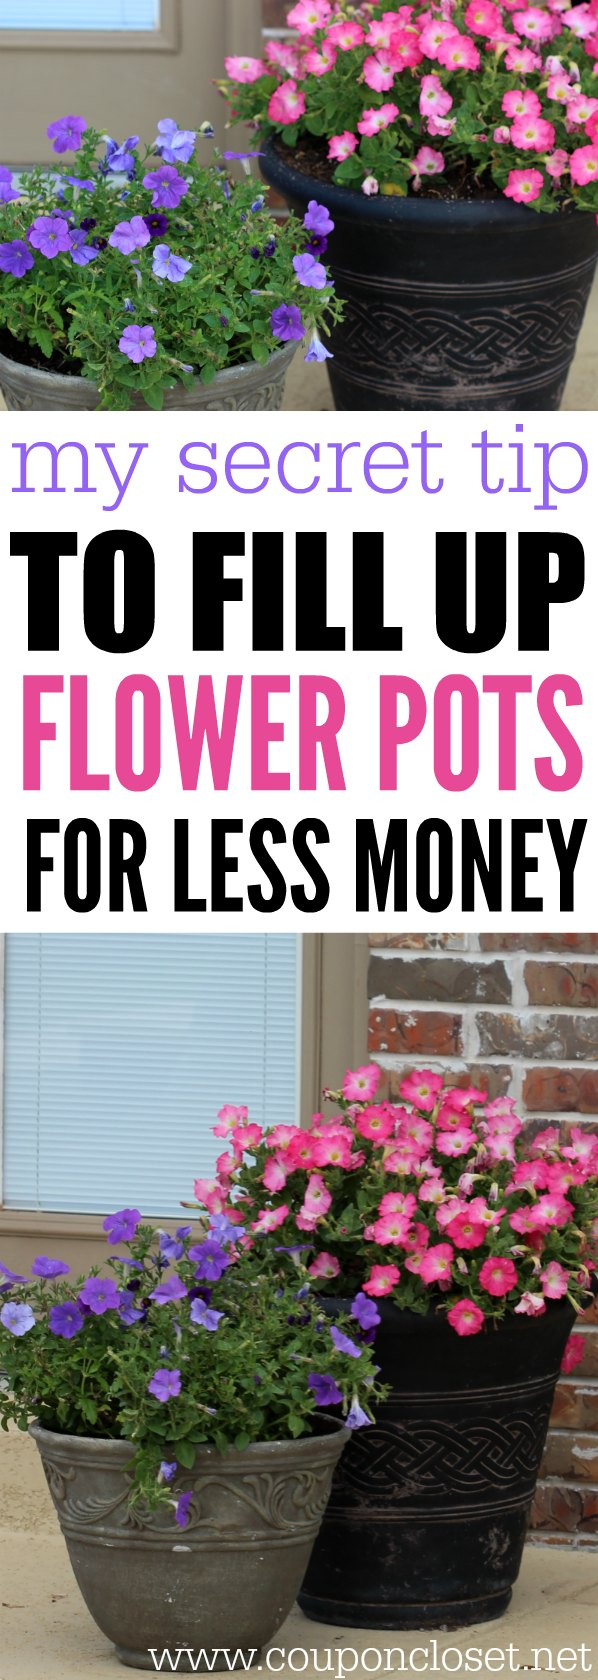 save on flowers - secret tip